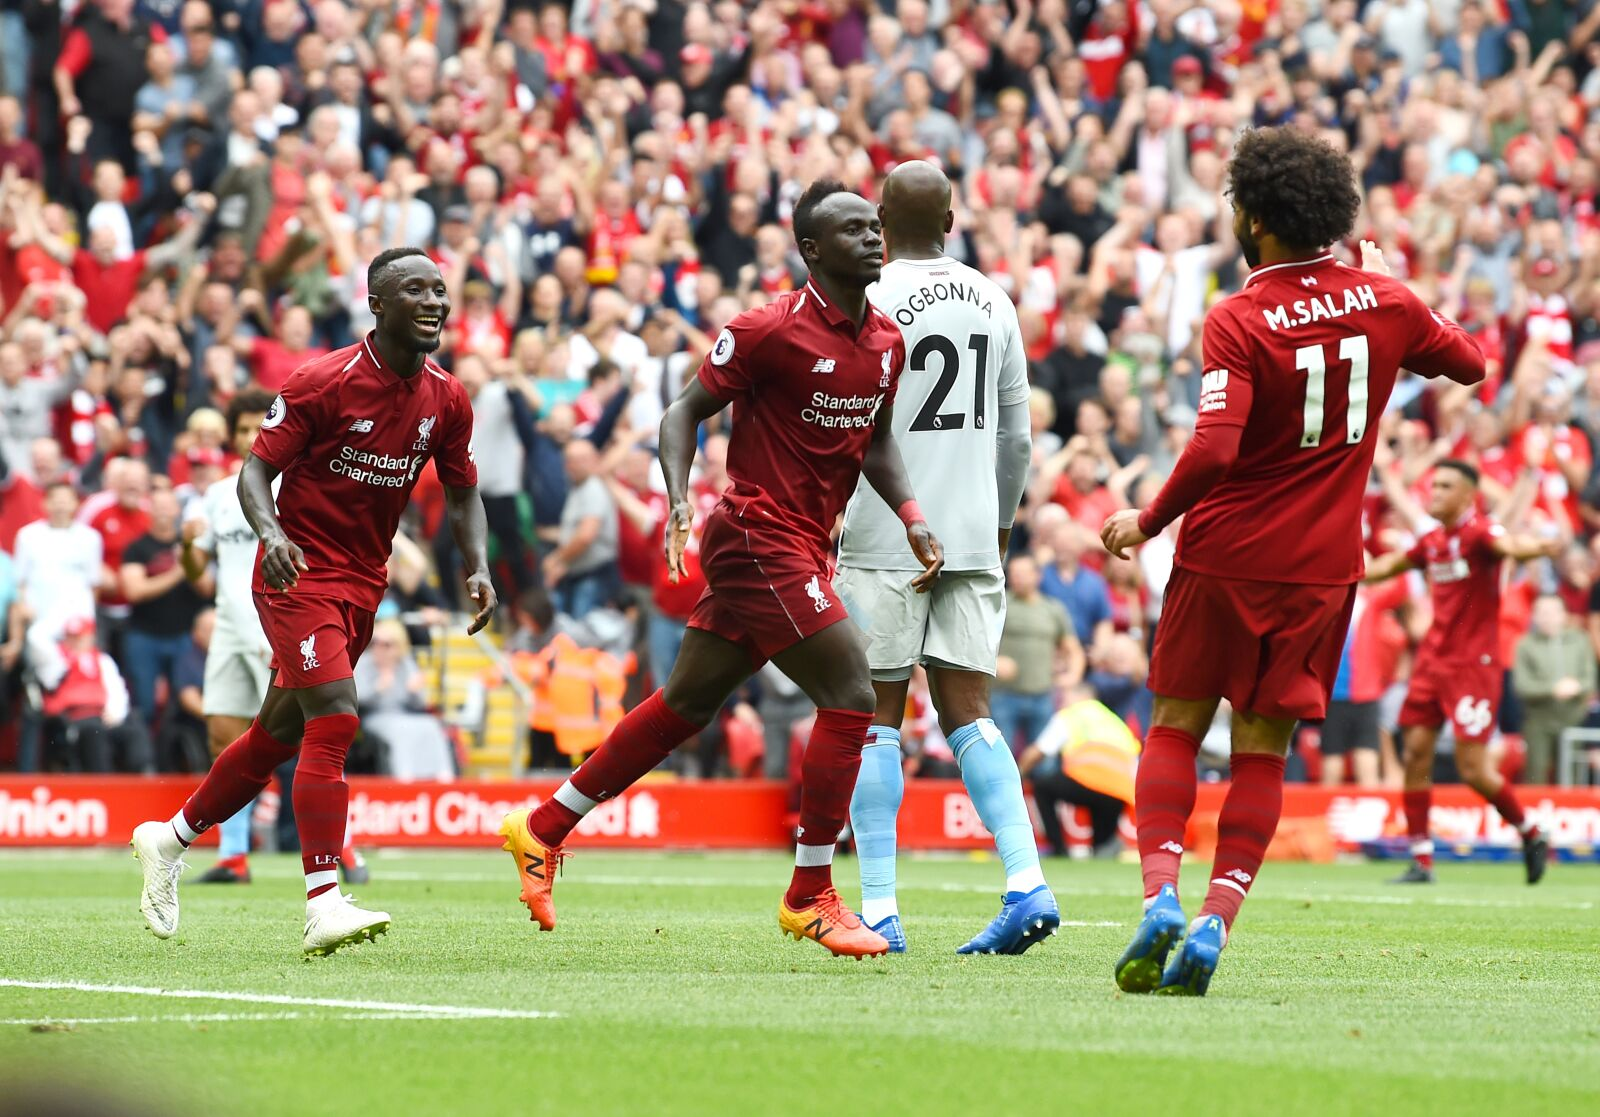 Liverpool looks dominant against West Ham: 3 things we learned